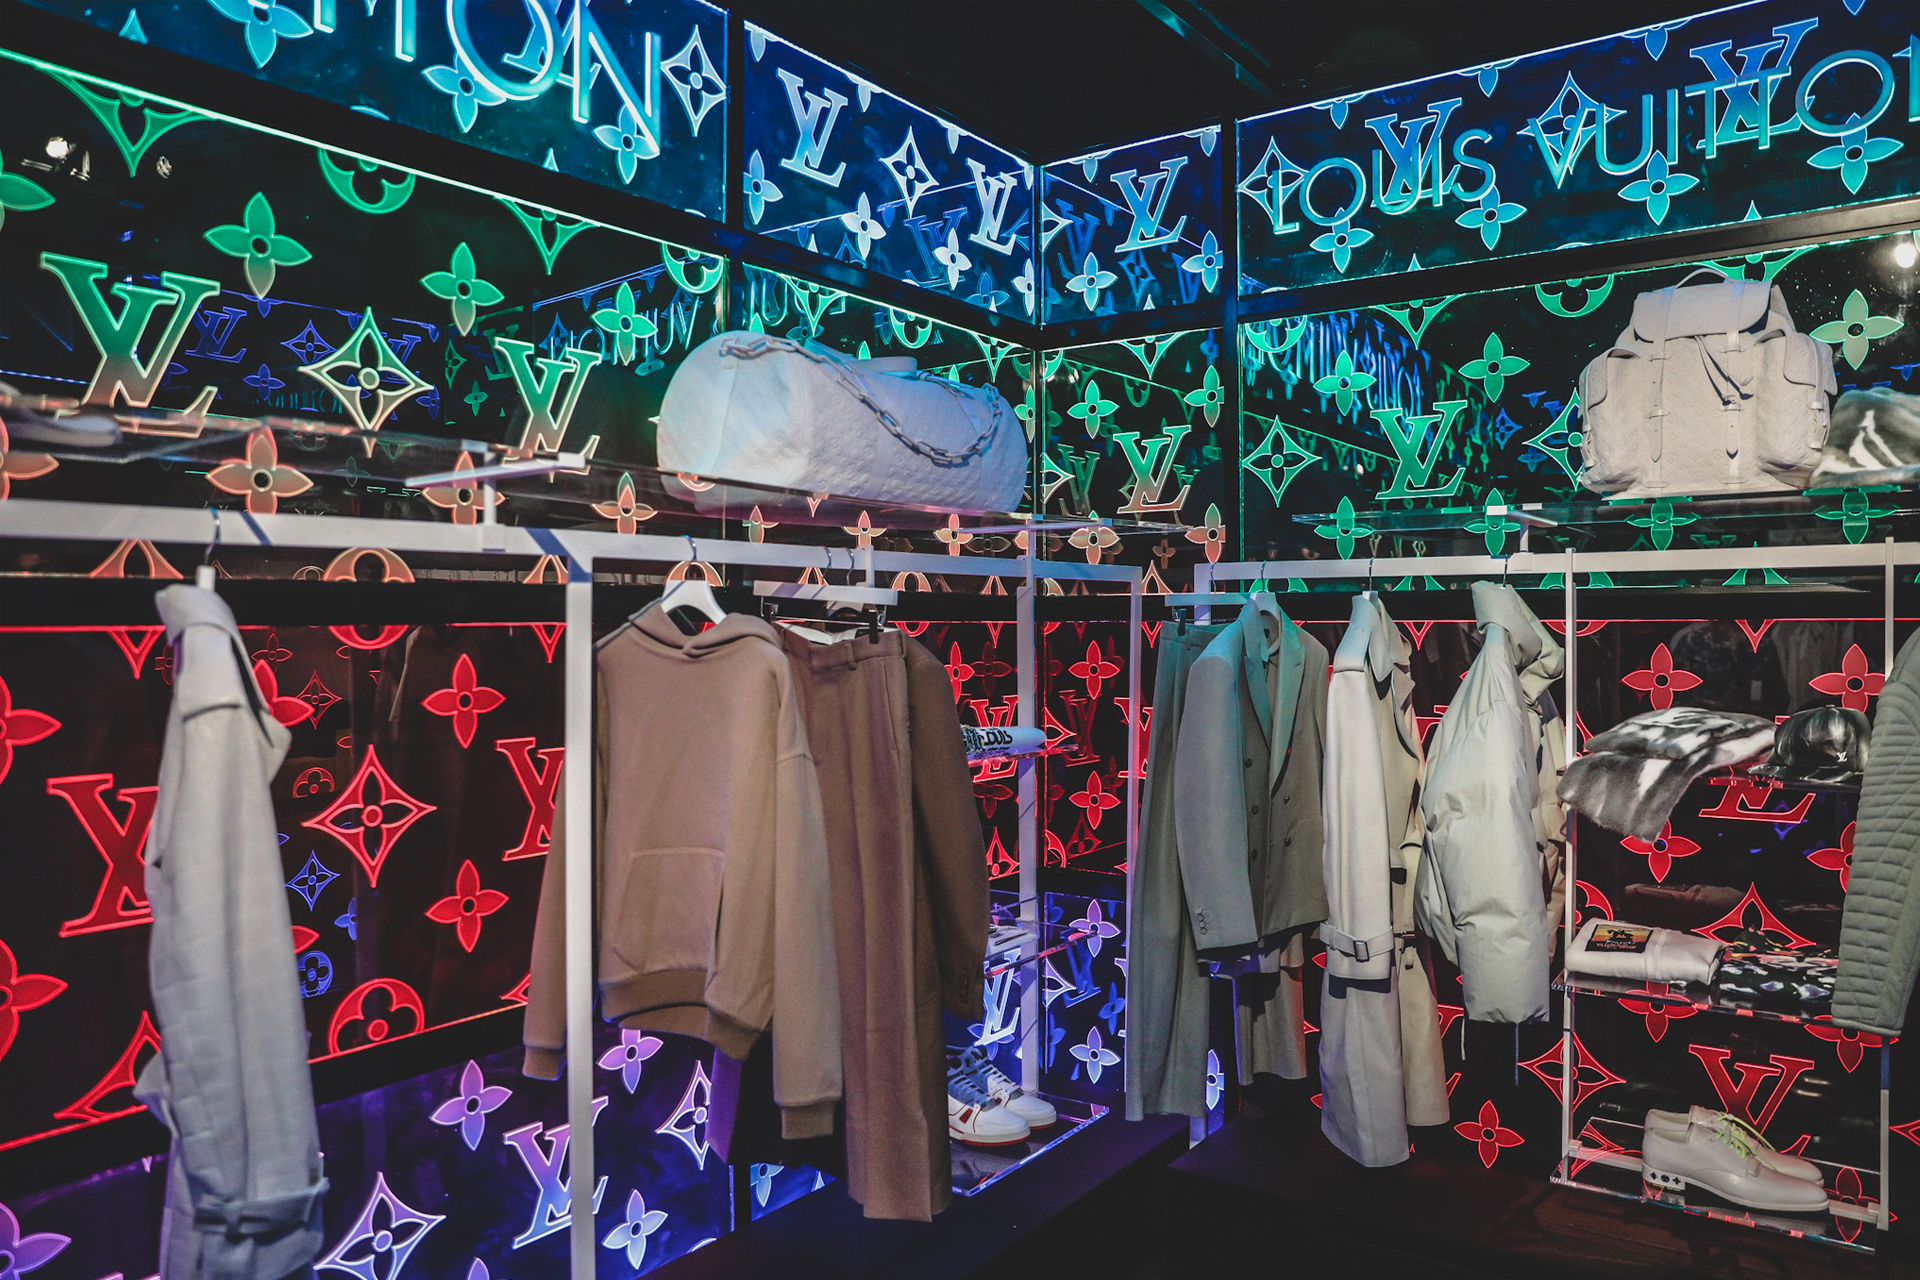 d4c1f8910f4d Virgil Abloh debuts collection at wizard of Oz London pop-up